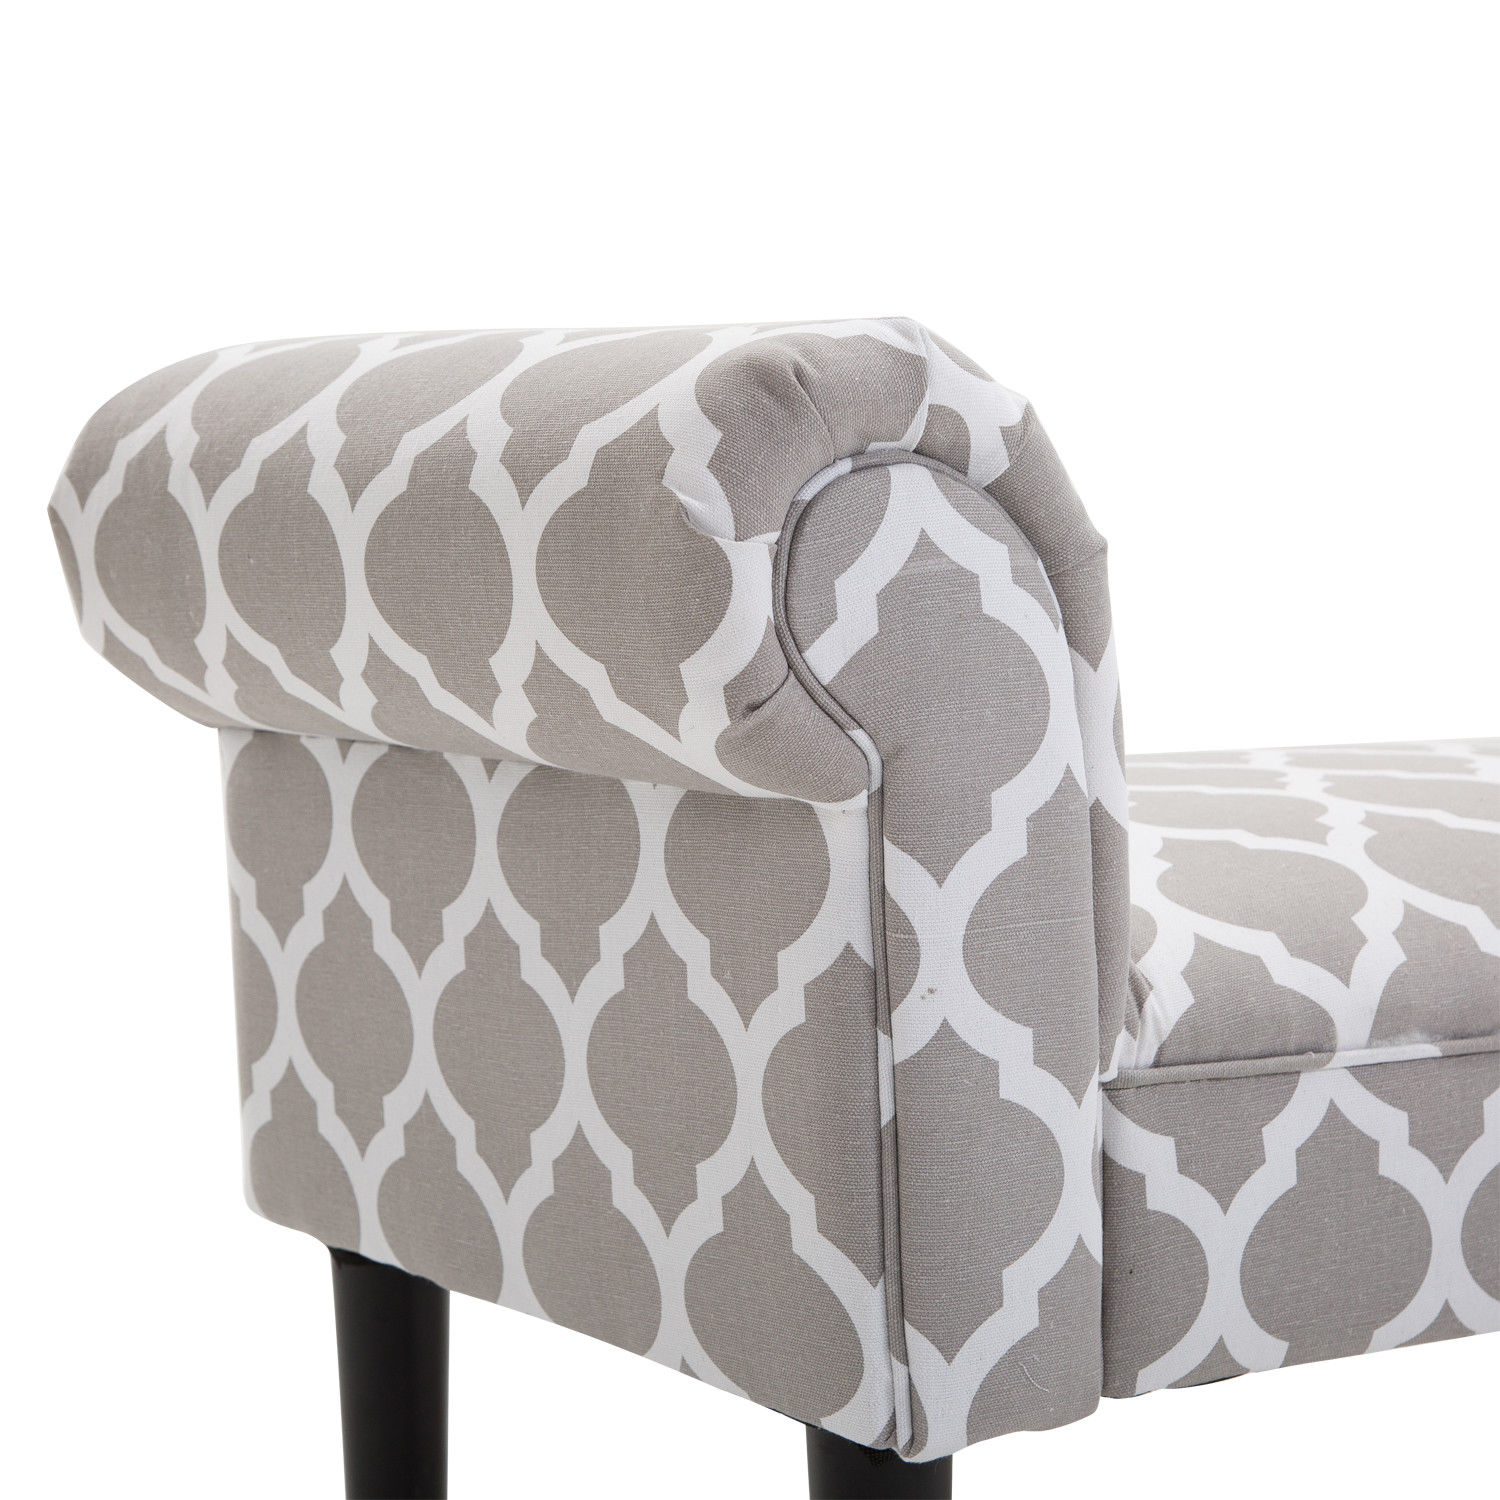 Elegant-Rolled-Arm-Bench-Bedside-End-of-Bed-Footstool-w-Arms-2-SIZE thumbnail 15